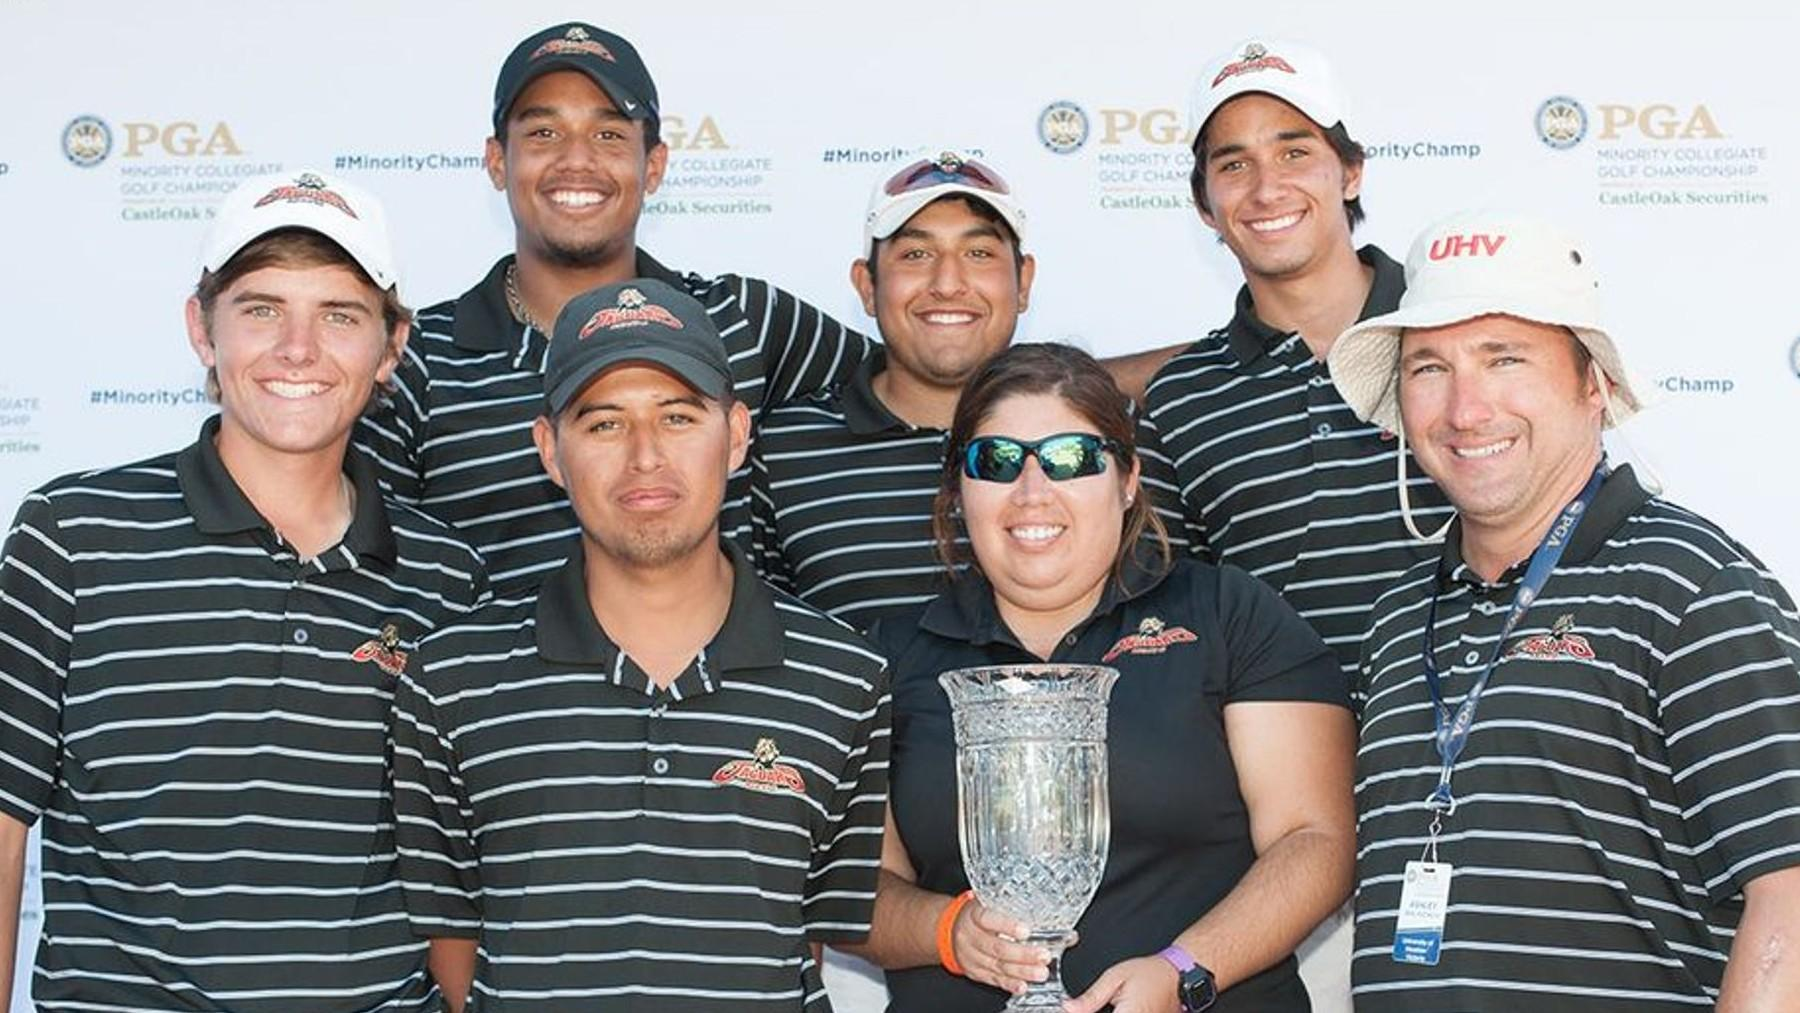 Jaguars capture third PGA Minority title